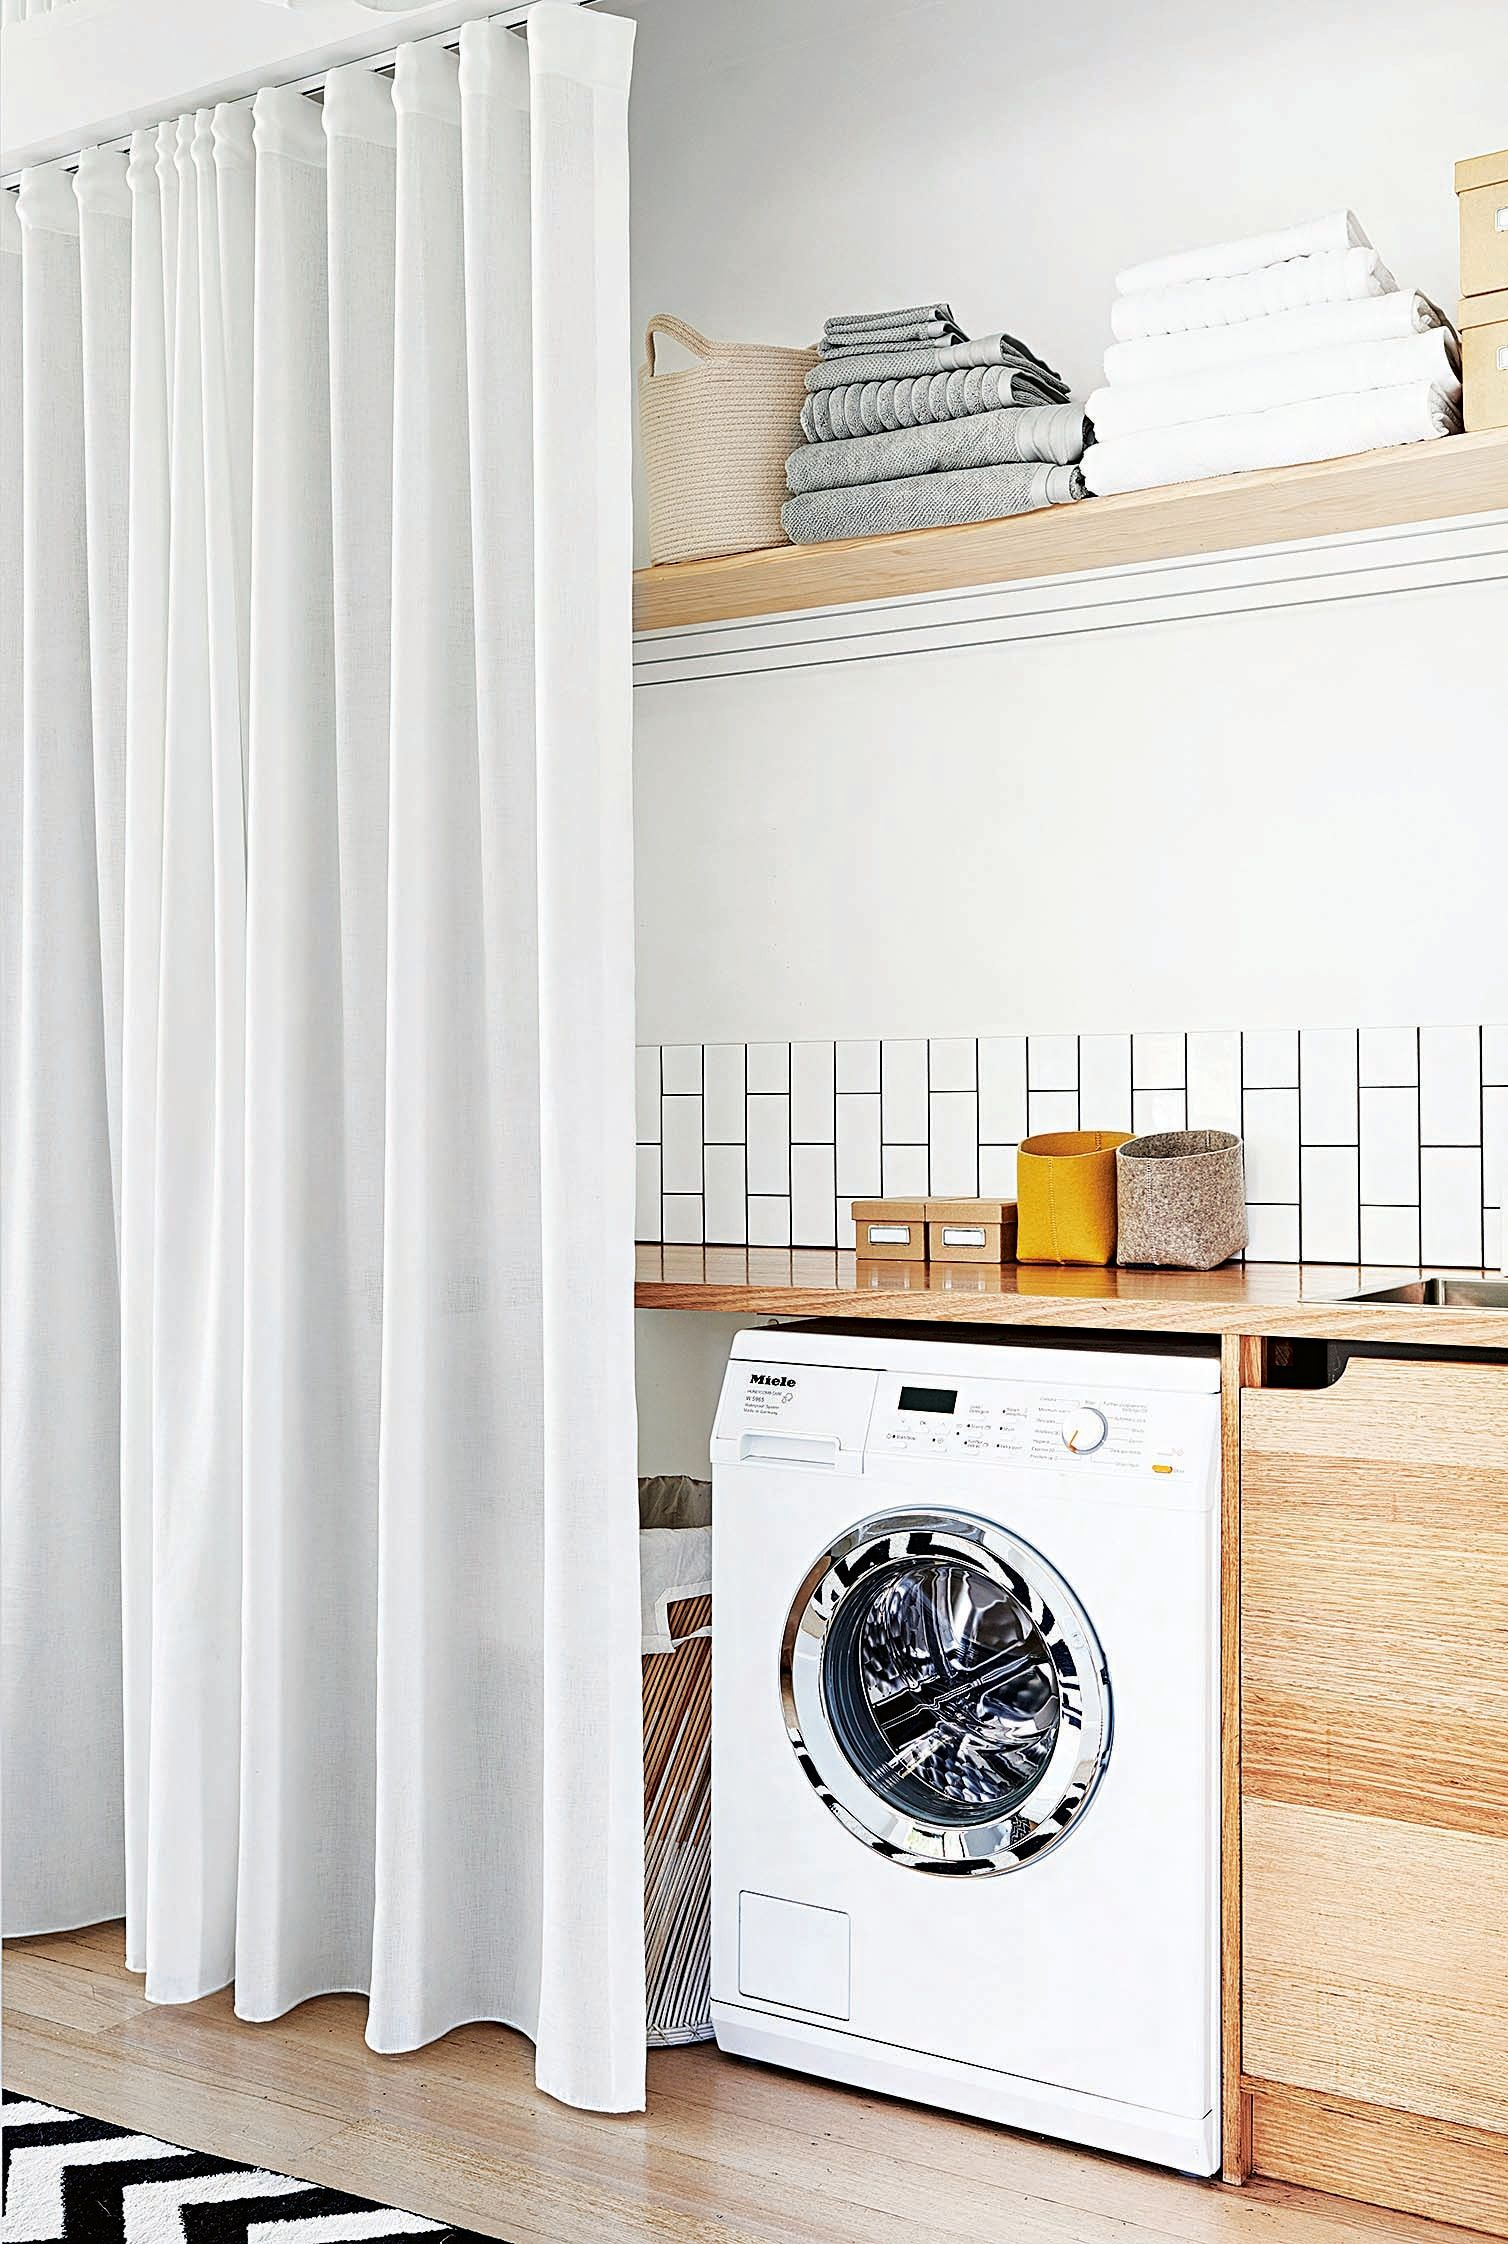 These Laundry Closets Tackle Chore Day in the Smartest Way